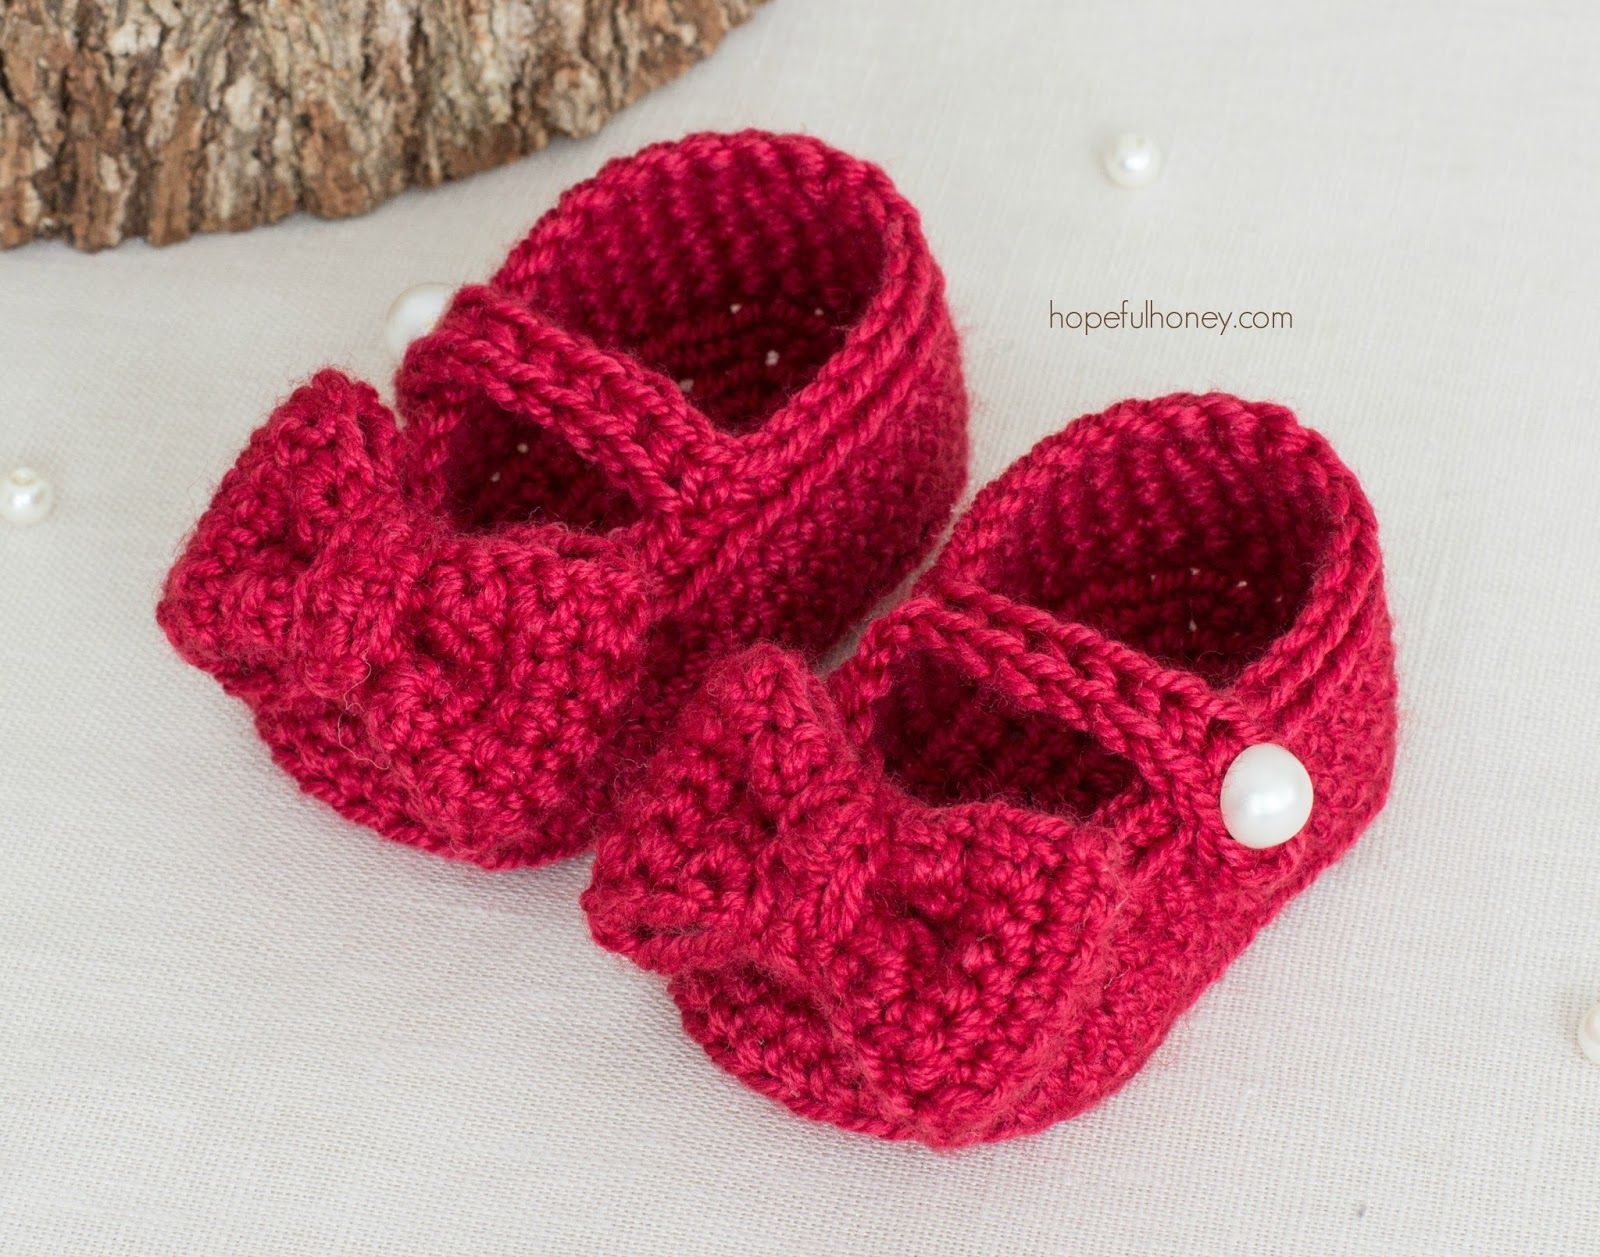 Ruby Red Mary Jane Booties - Free Crochet Pattern | Pinterest ...